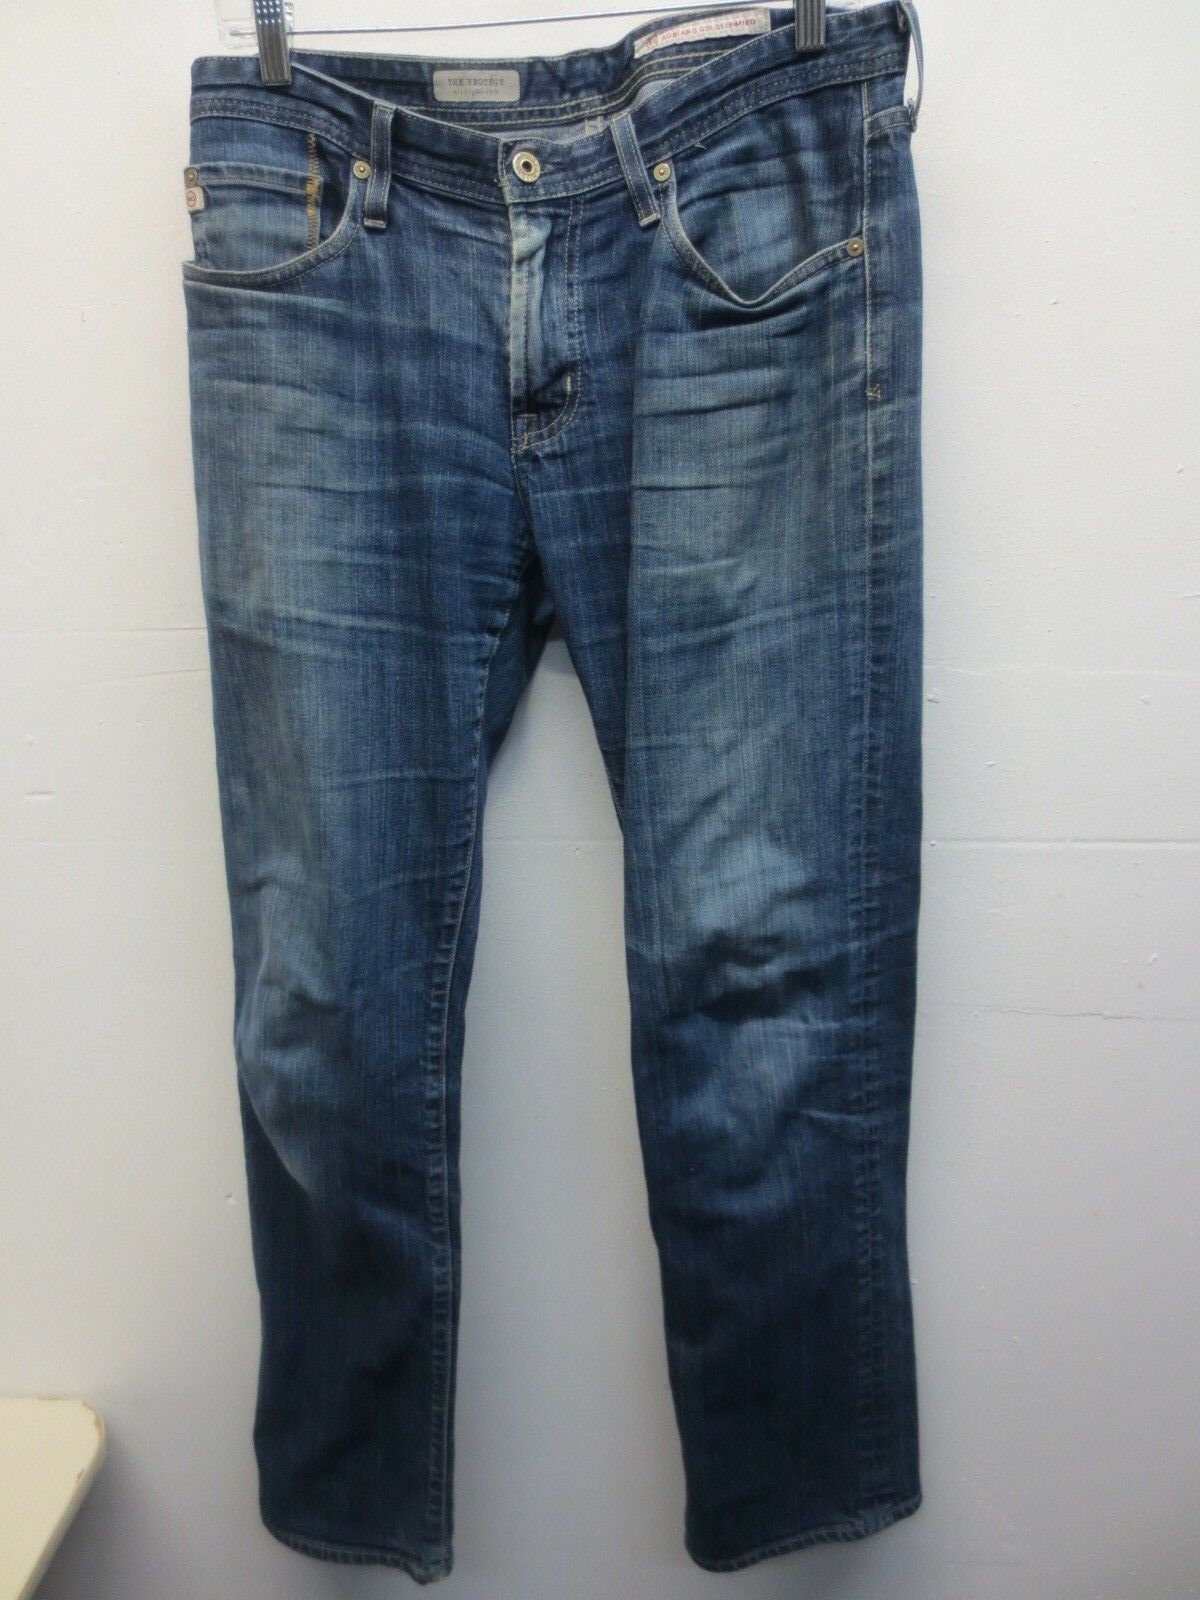 Adriano goldschmied, The Predégé, Straight Leg, Men's Size 32 bluee Jeans